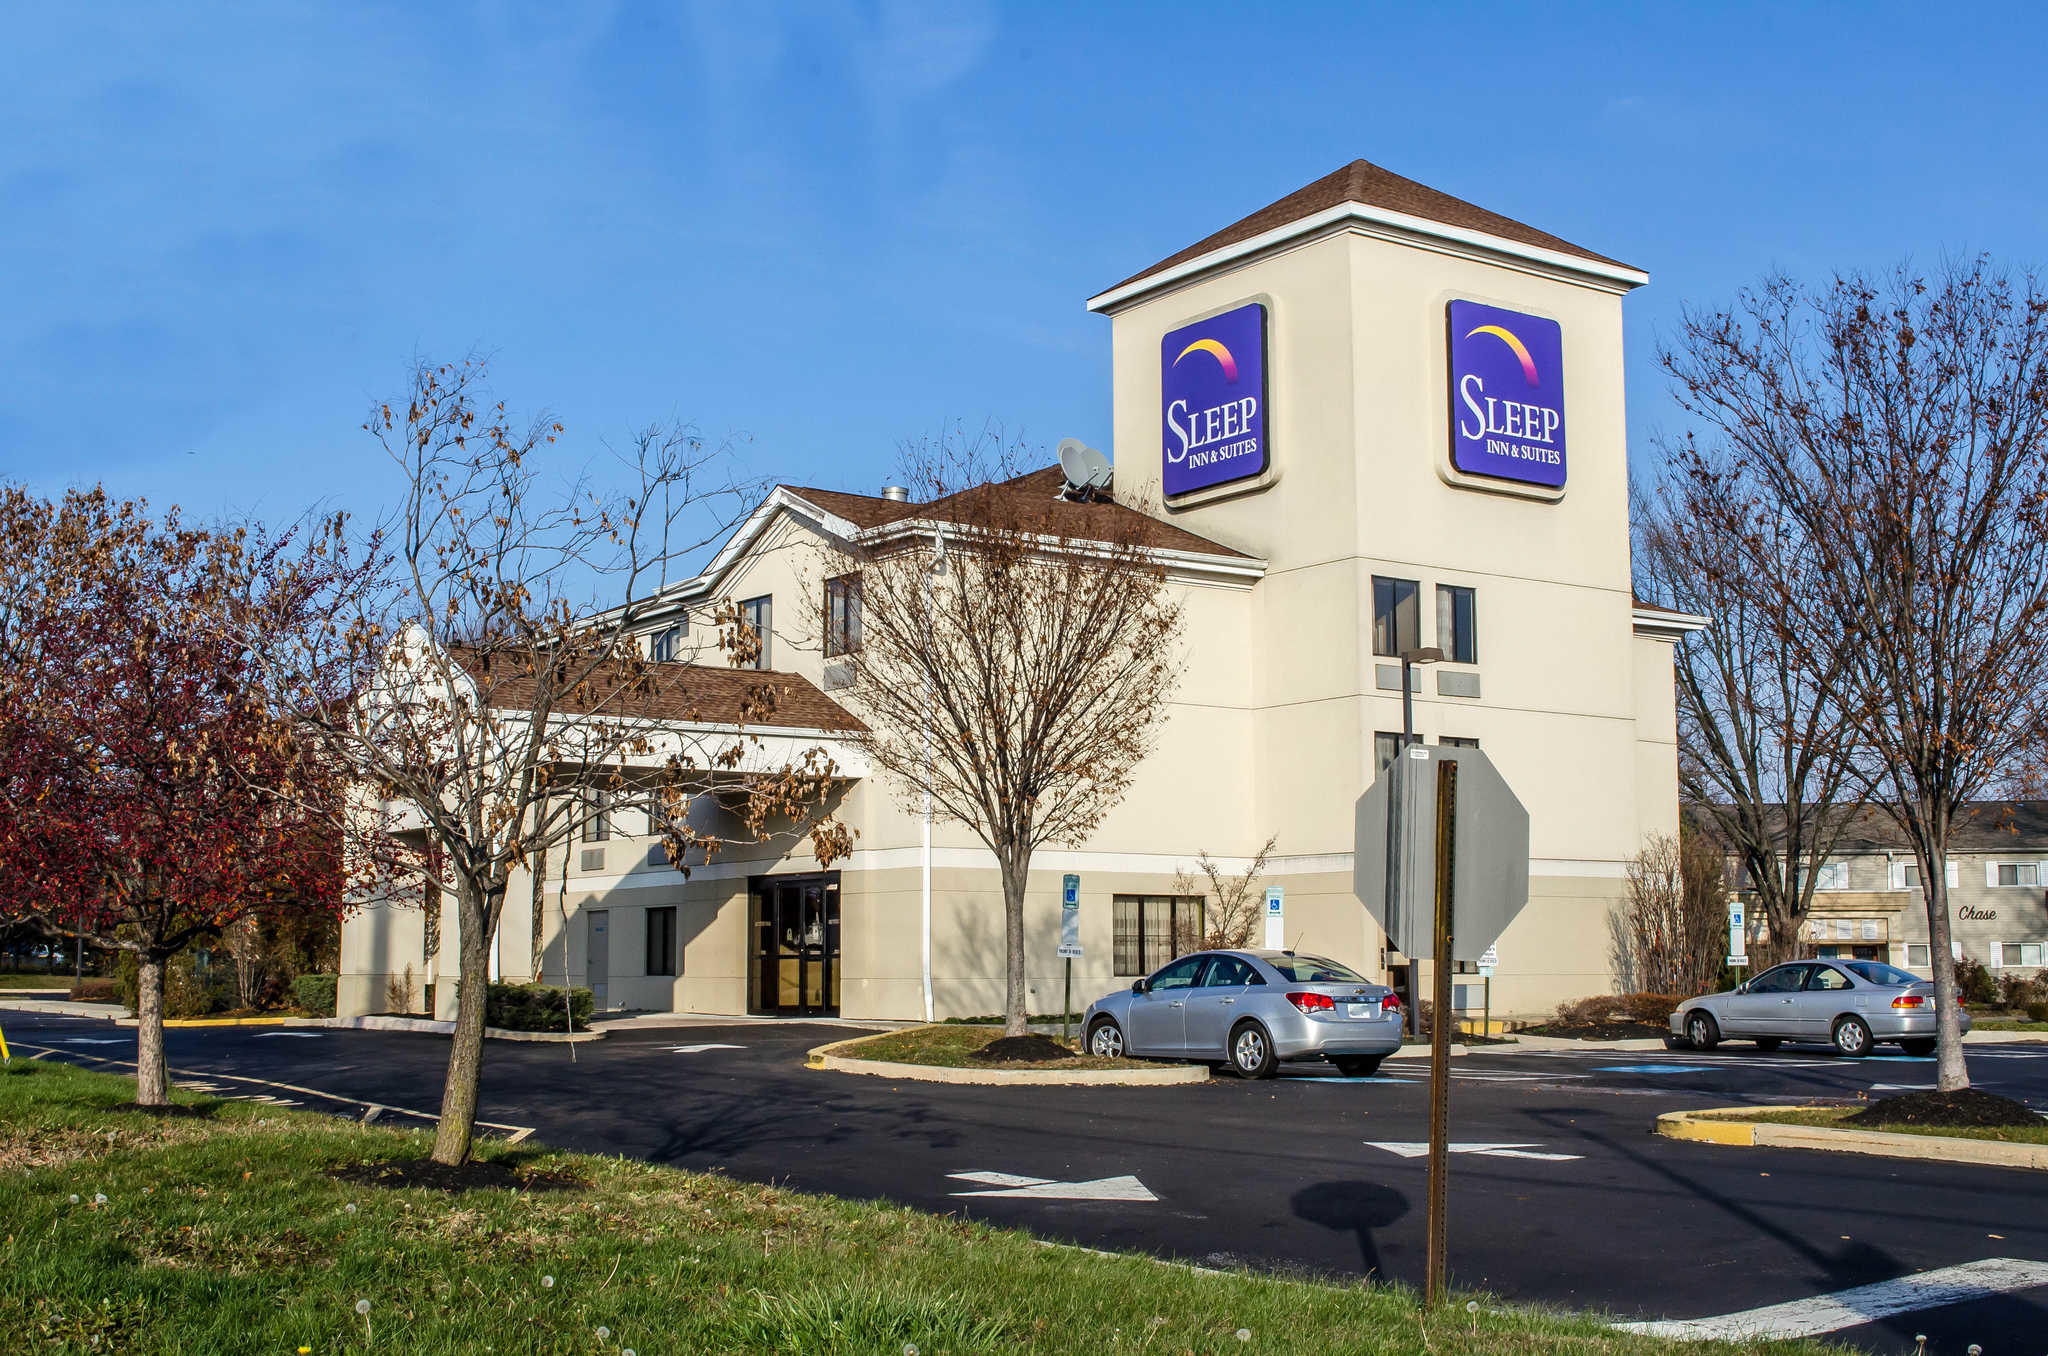 Sleep Inn & Suites image 1